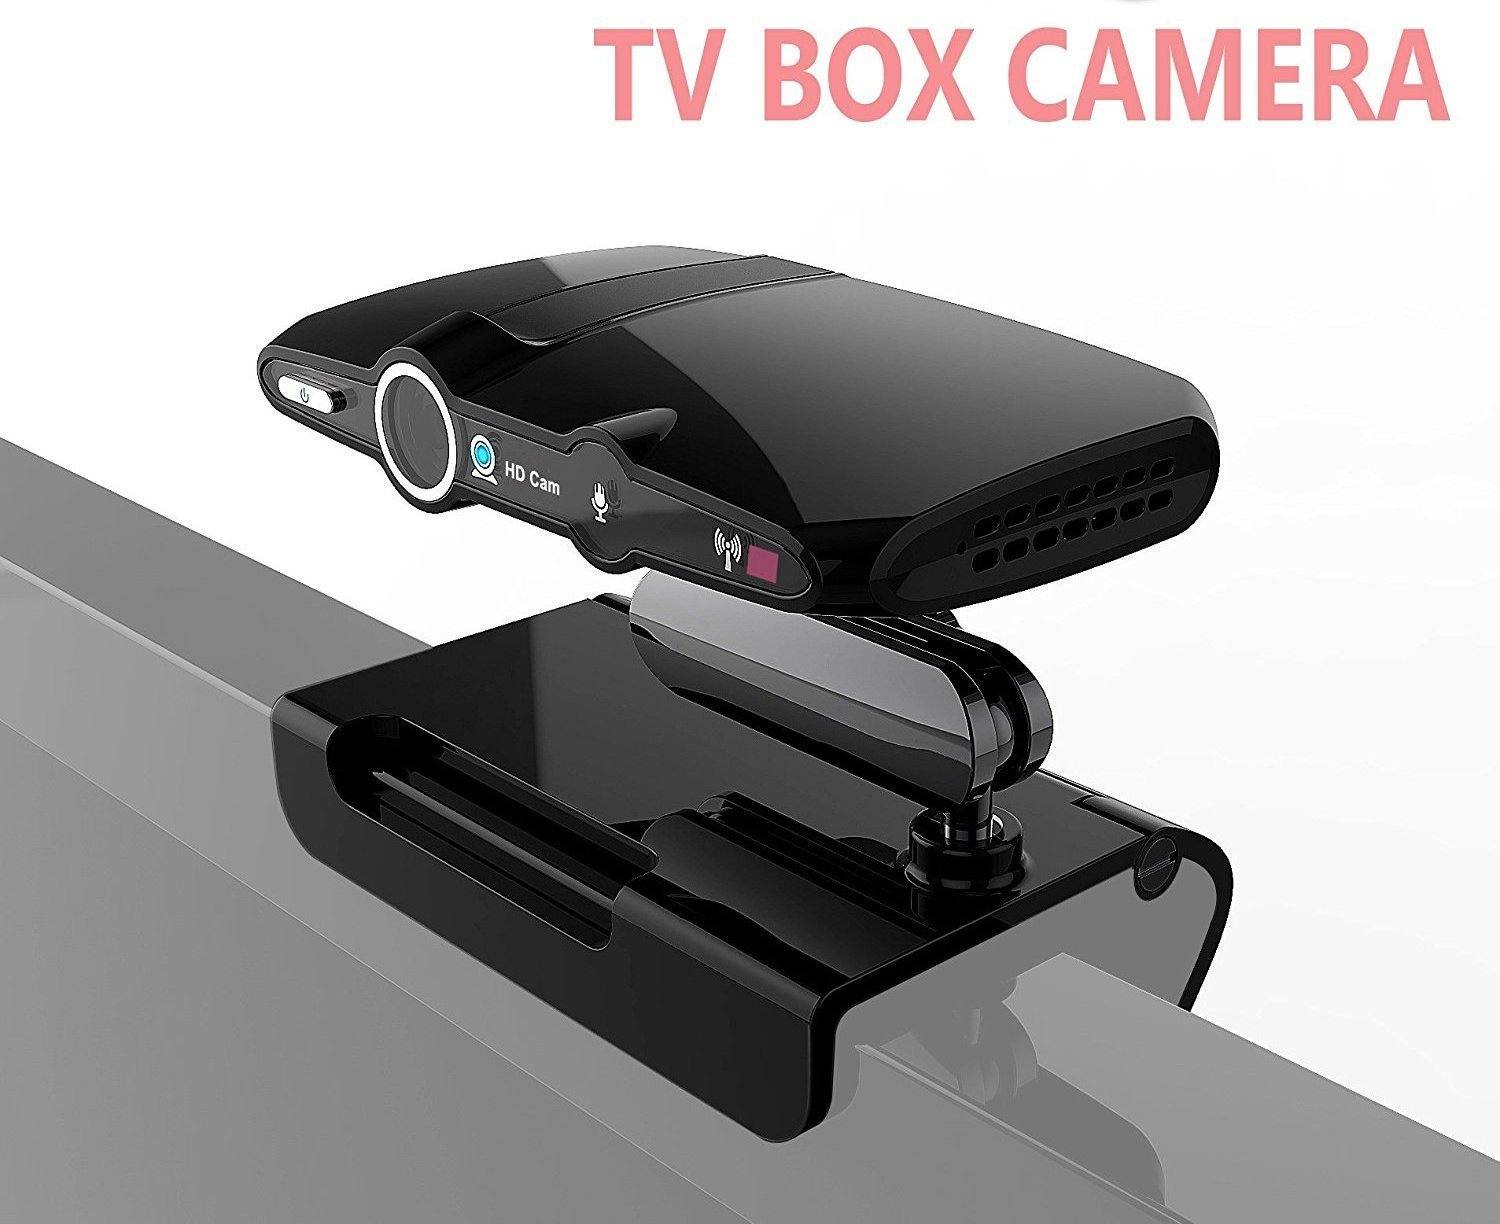 Smart Android TV Box with Camera